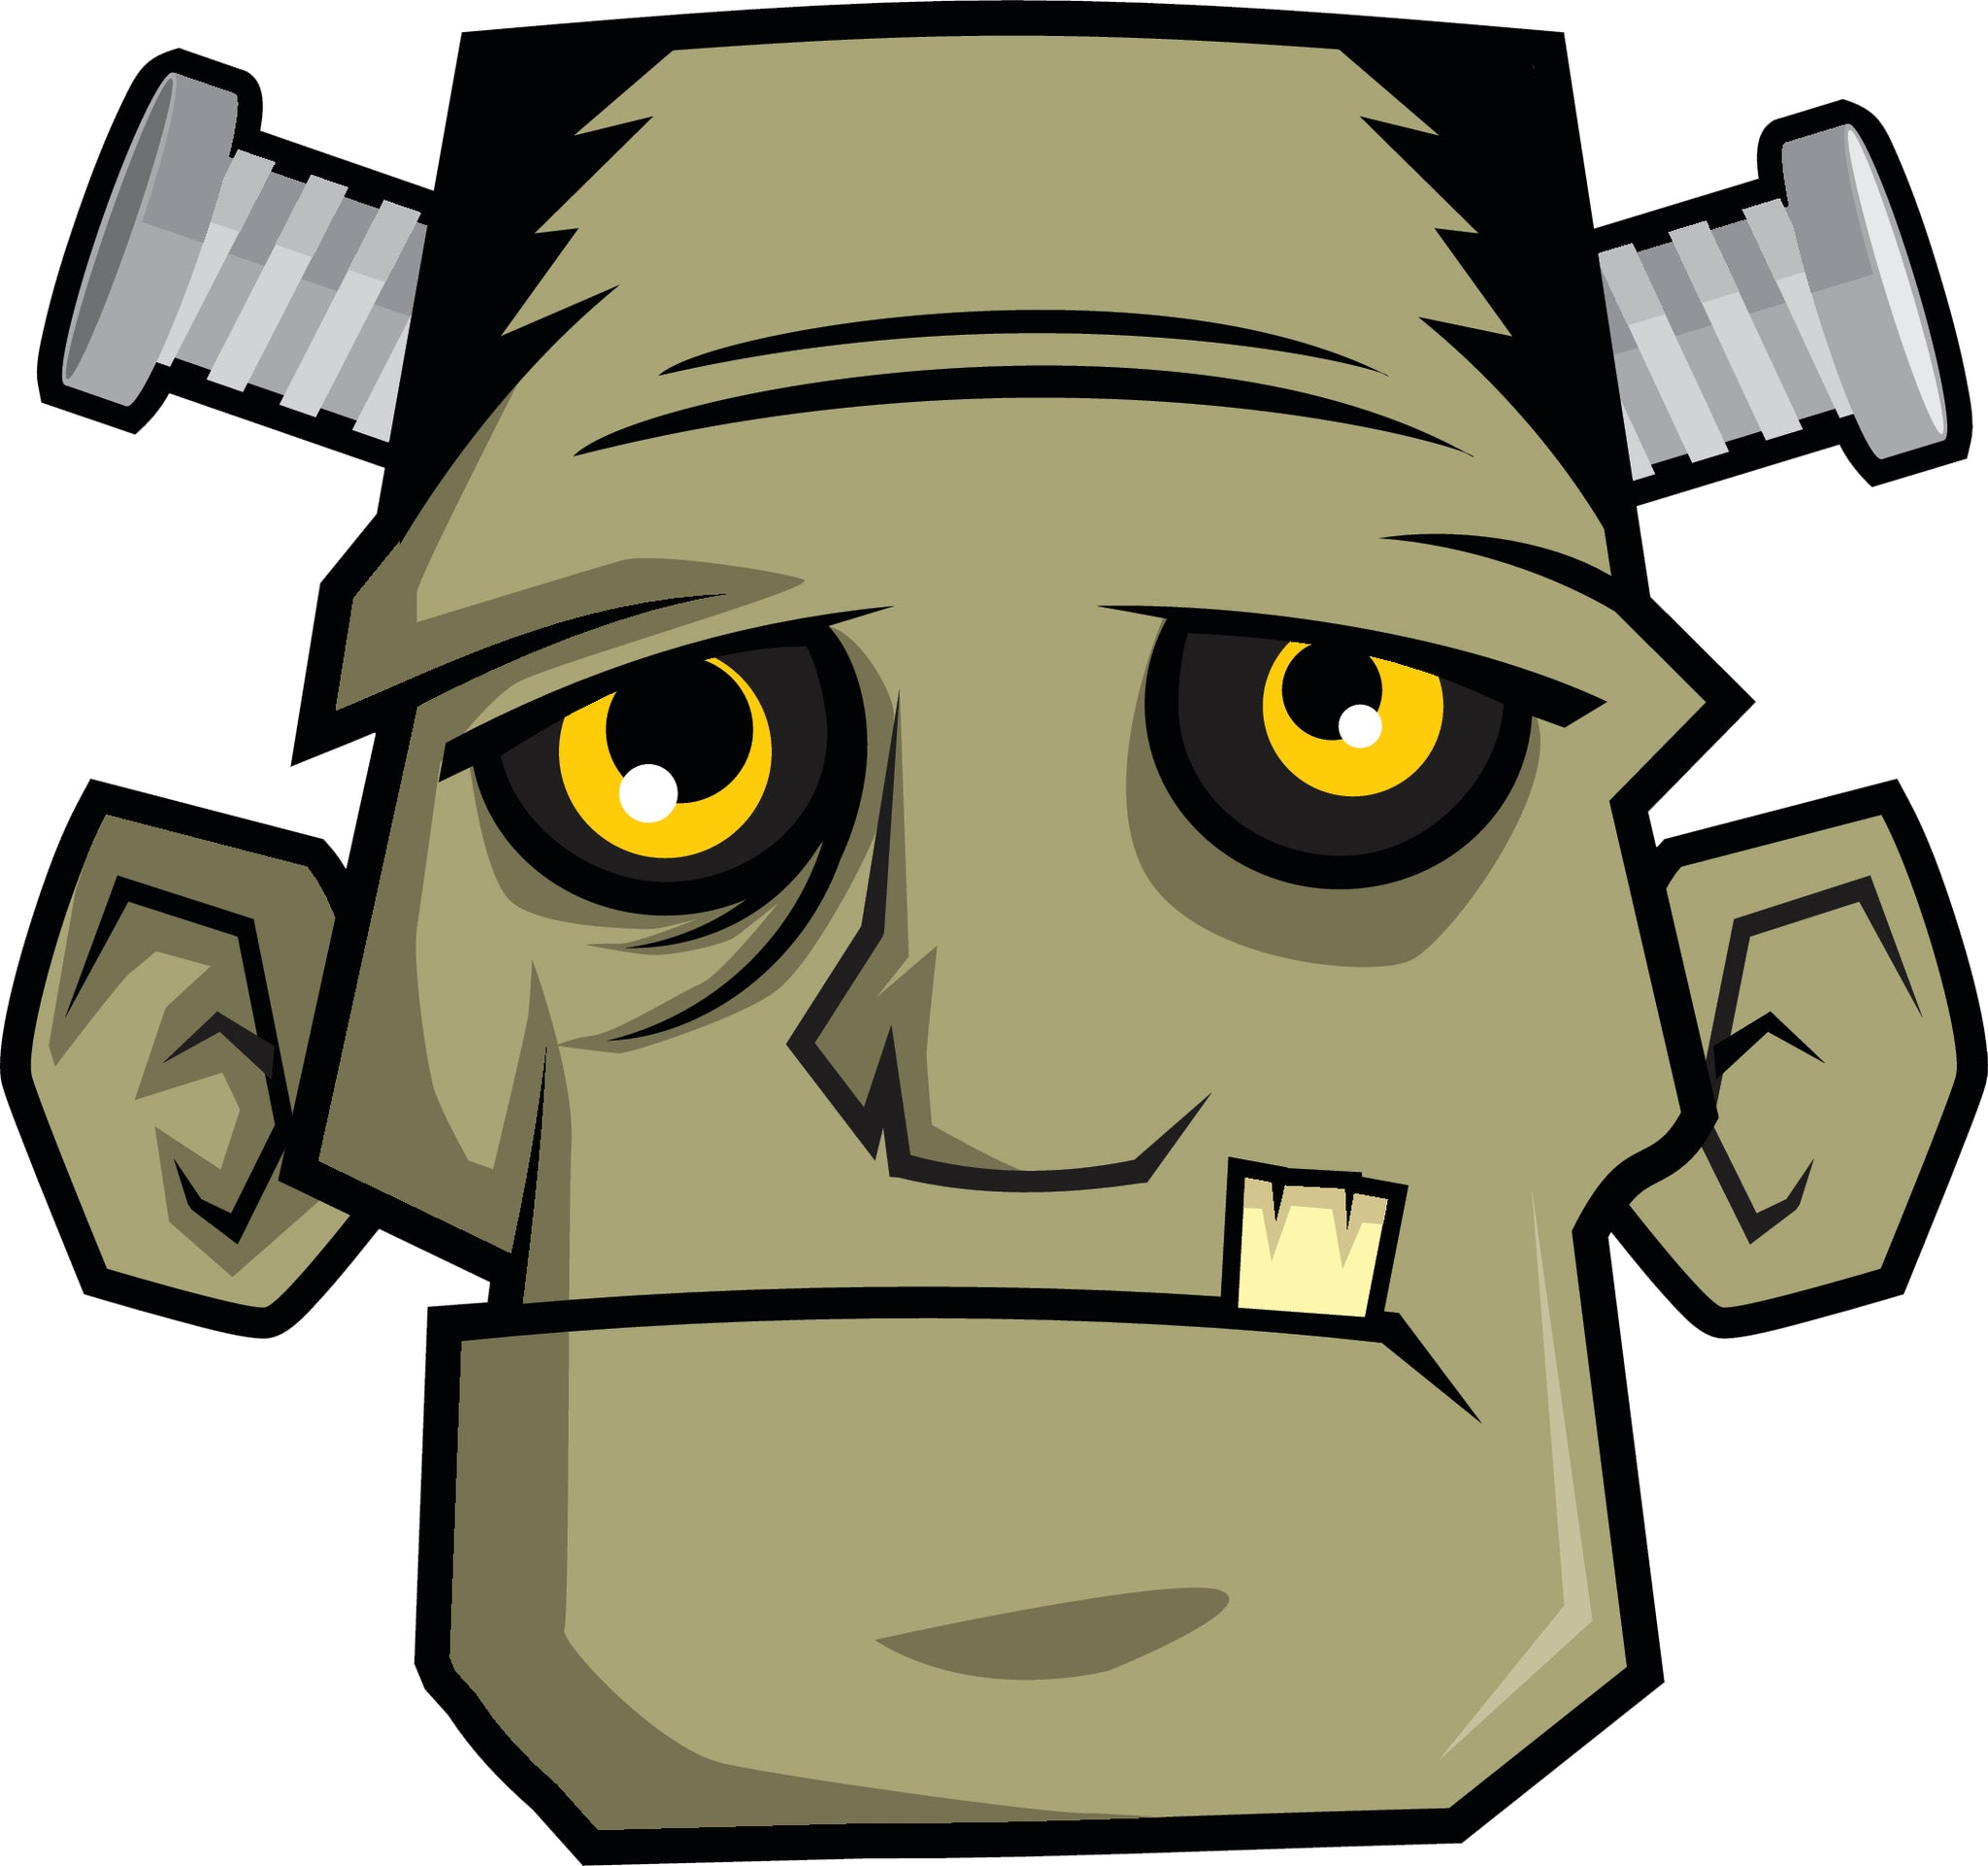 Creepy Cartoon Classic Horror Monster - Frankenstein Vinyl Decal Sticker